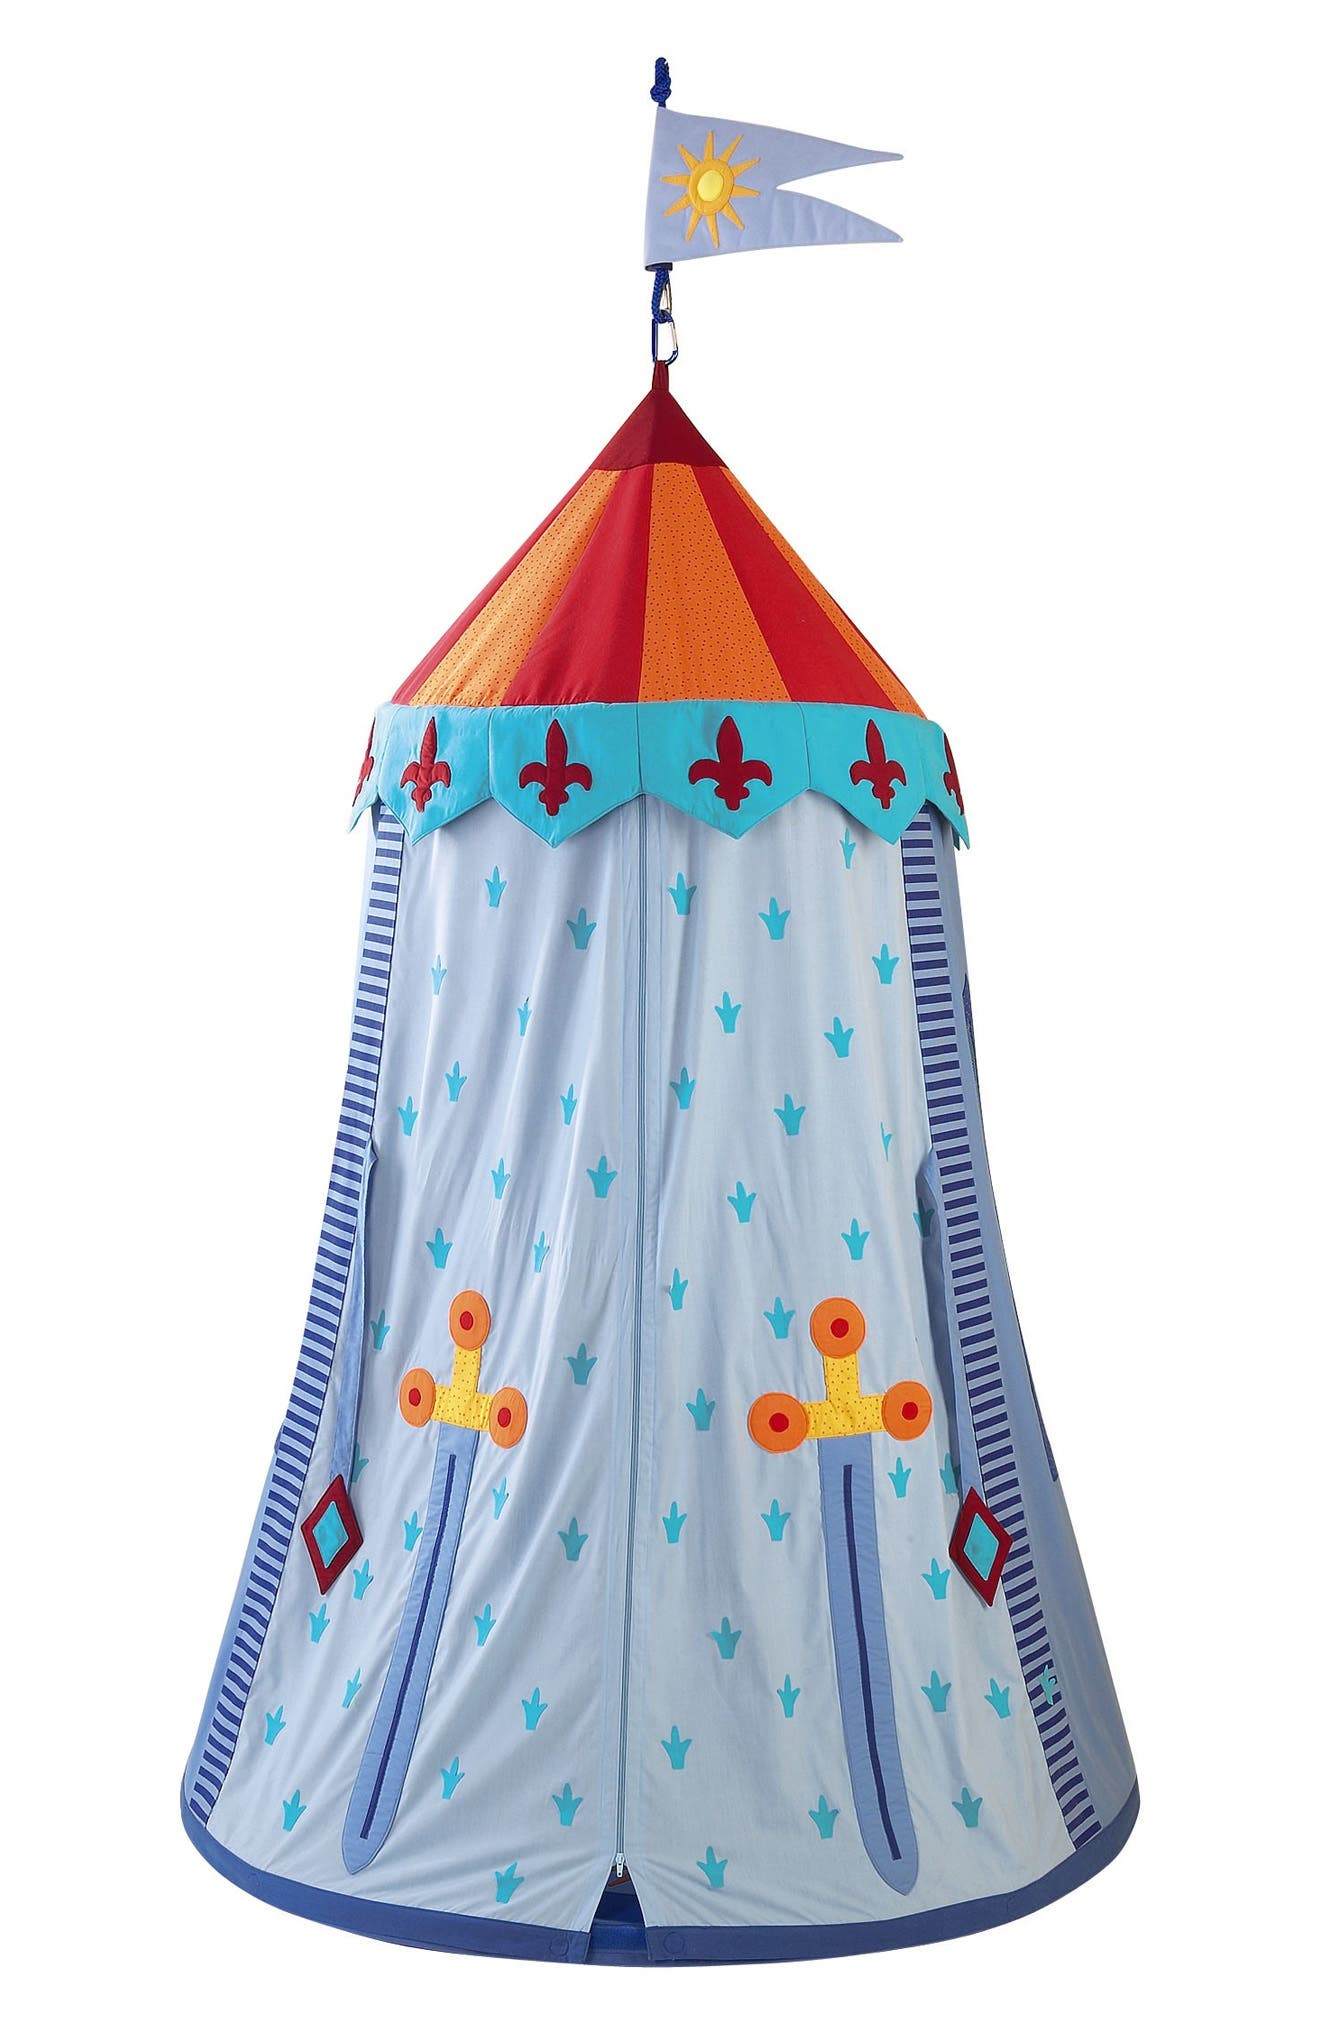 'Knights' Hanging Play Tent,                             Alternate thumbnail 3, color,                             400